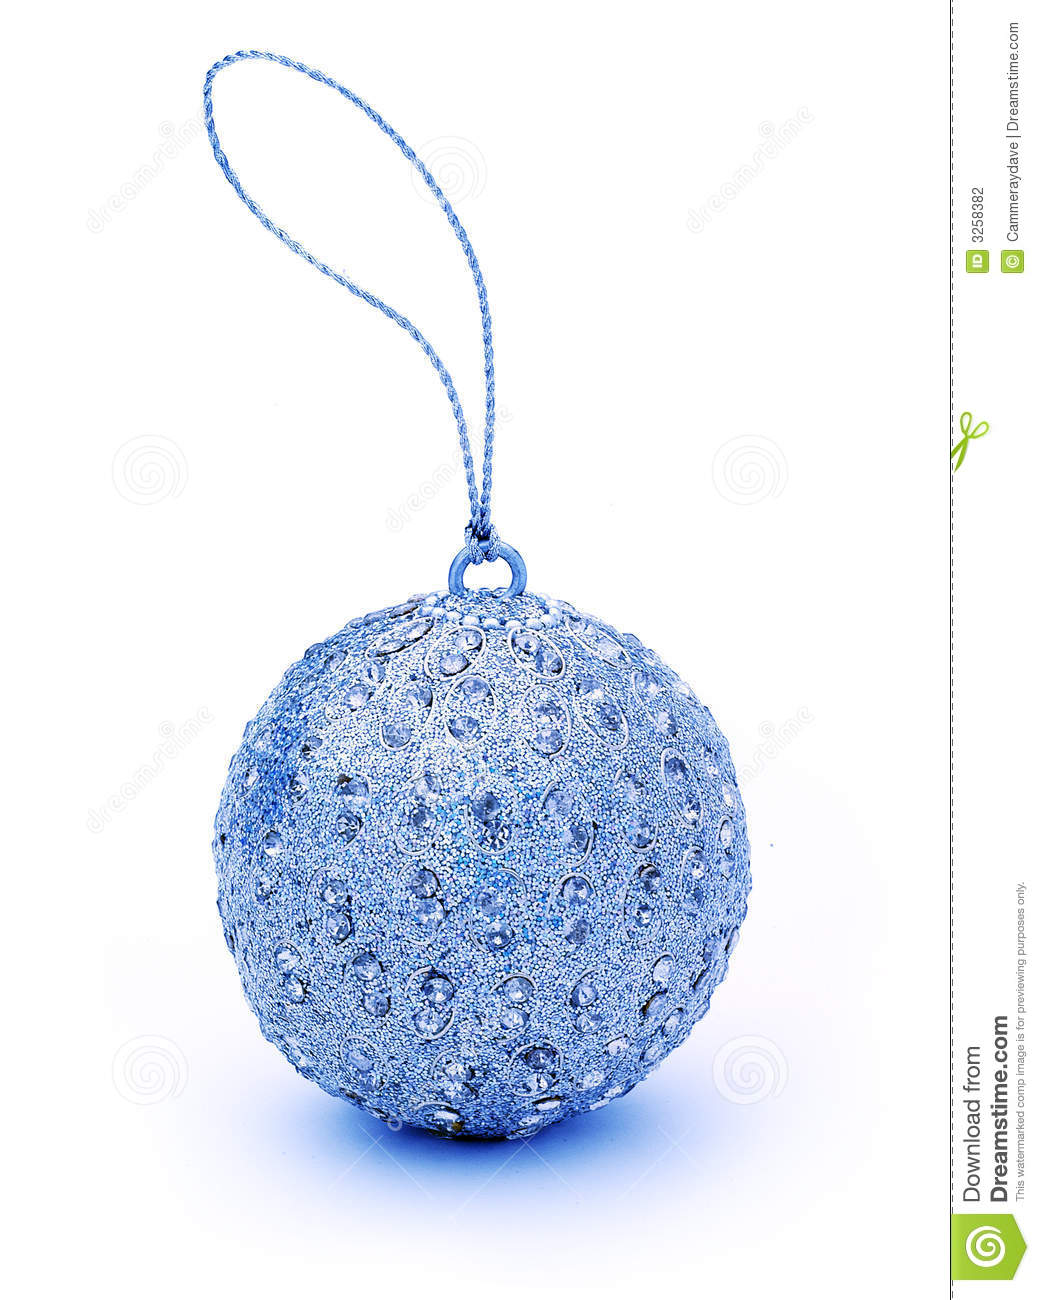 Blue Christmas Bauble Ornament Stock Photo Image 3258382